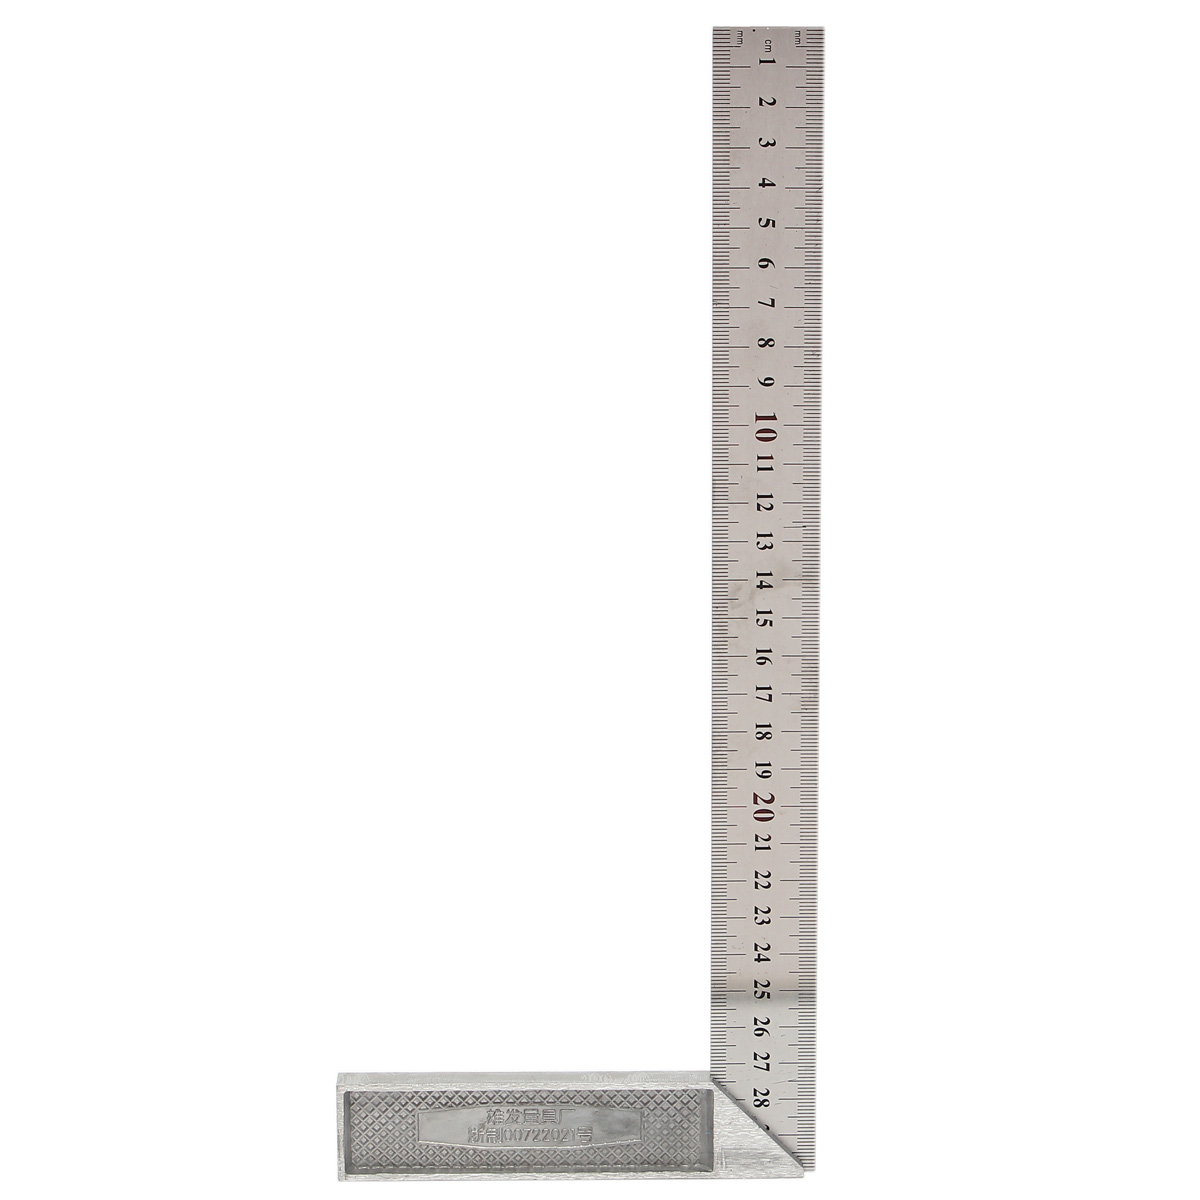 Angle Square Ruler 30cm Stainless Steel Right Measuring Squares Material Steel Type Rectangular Device Range Measurement